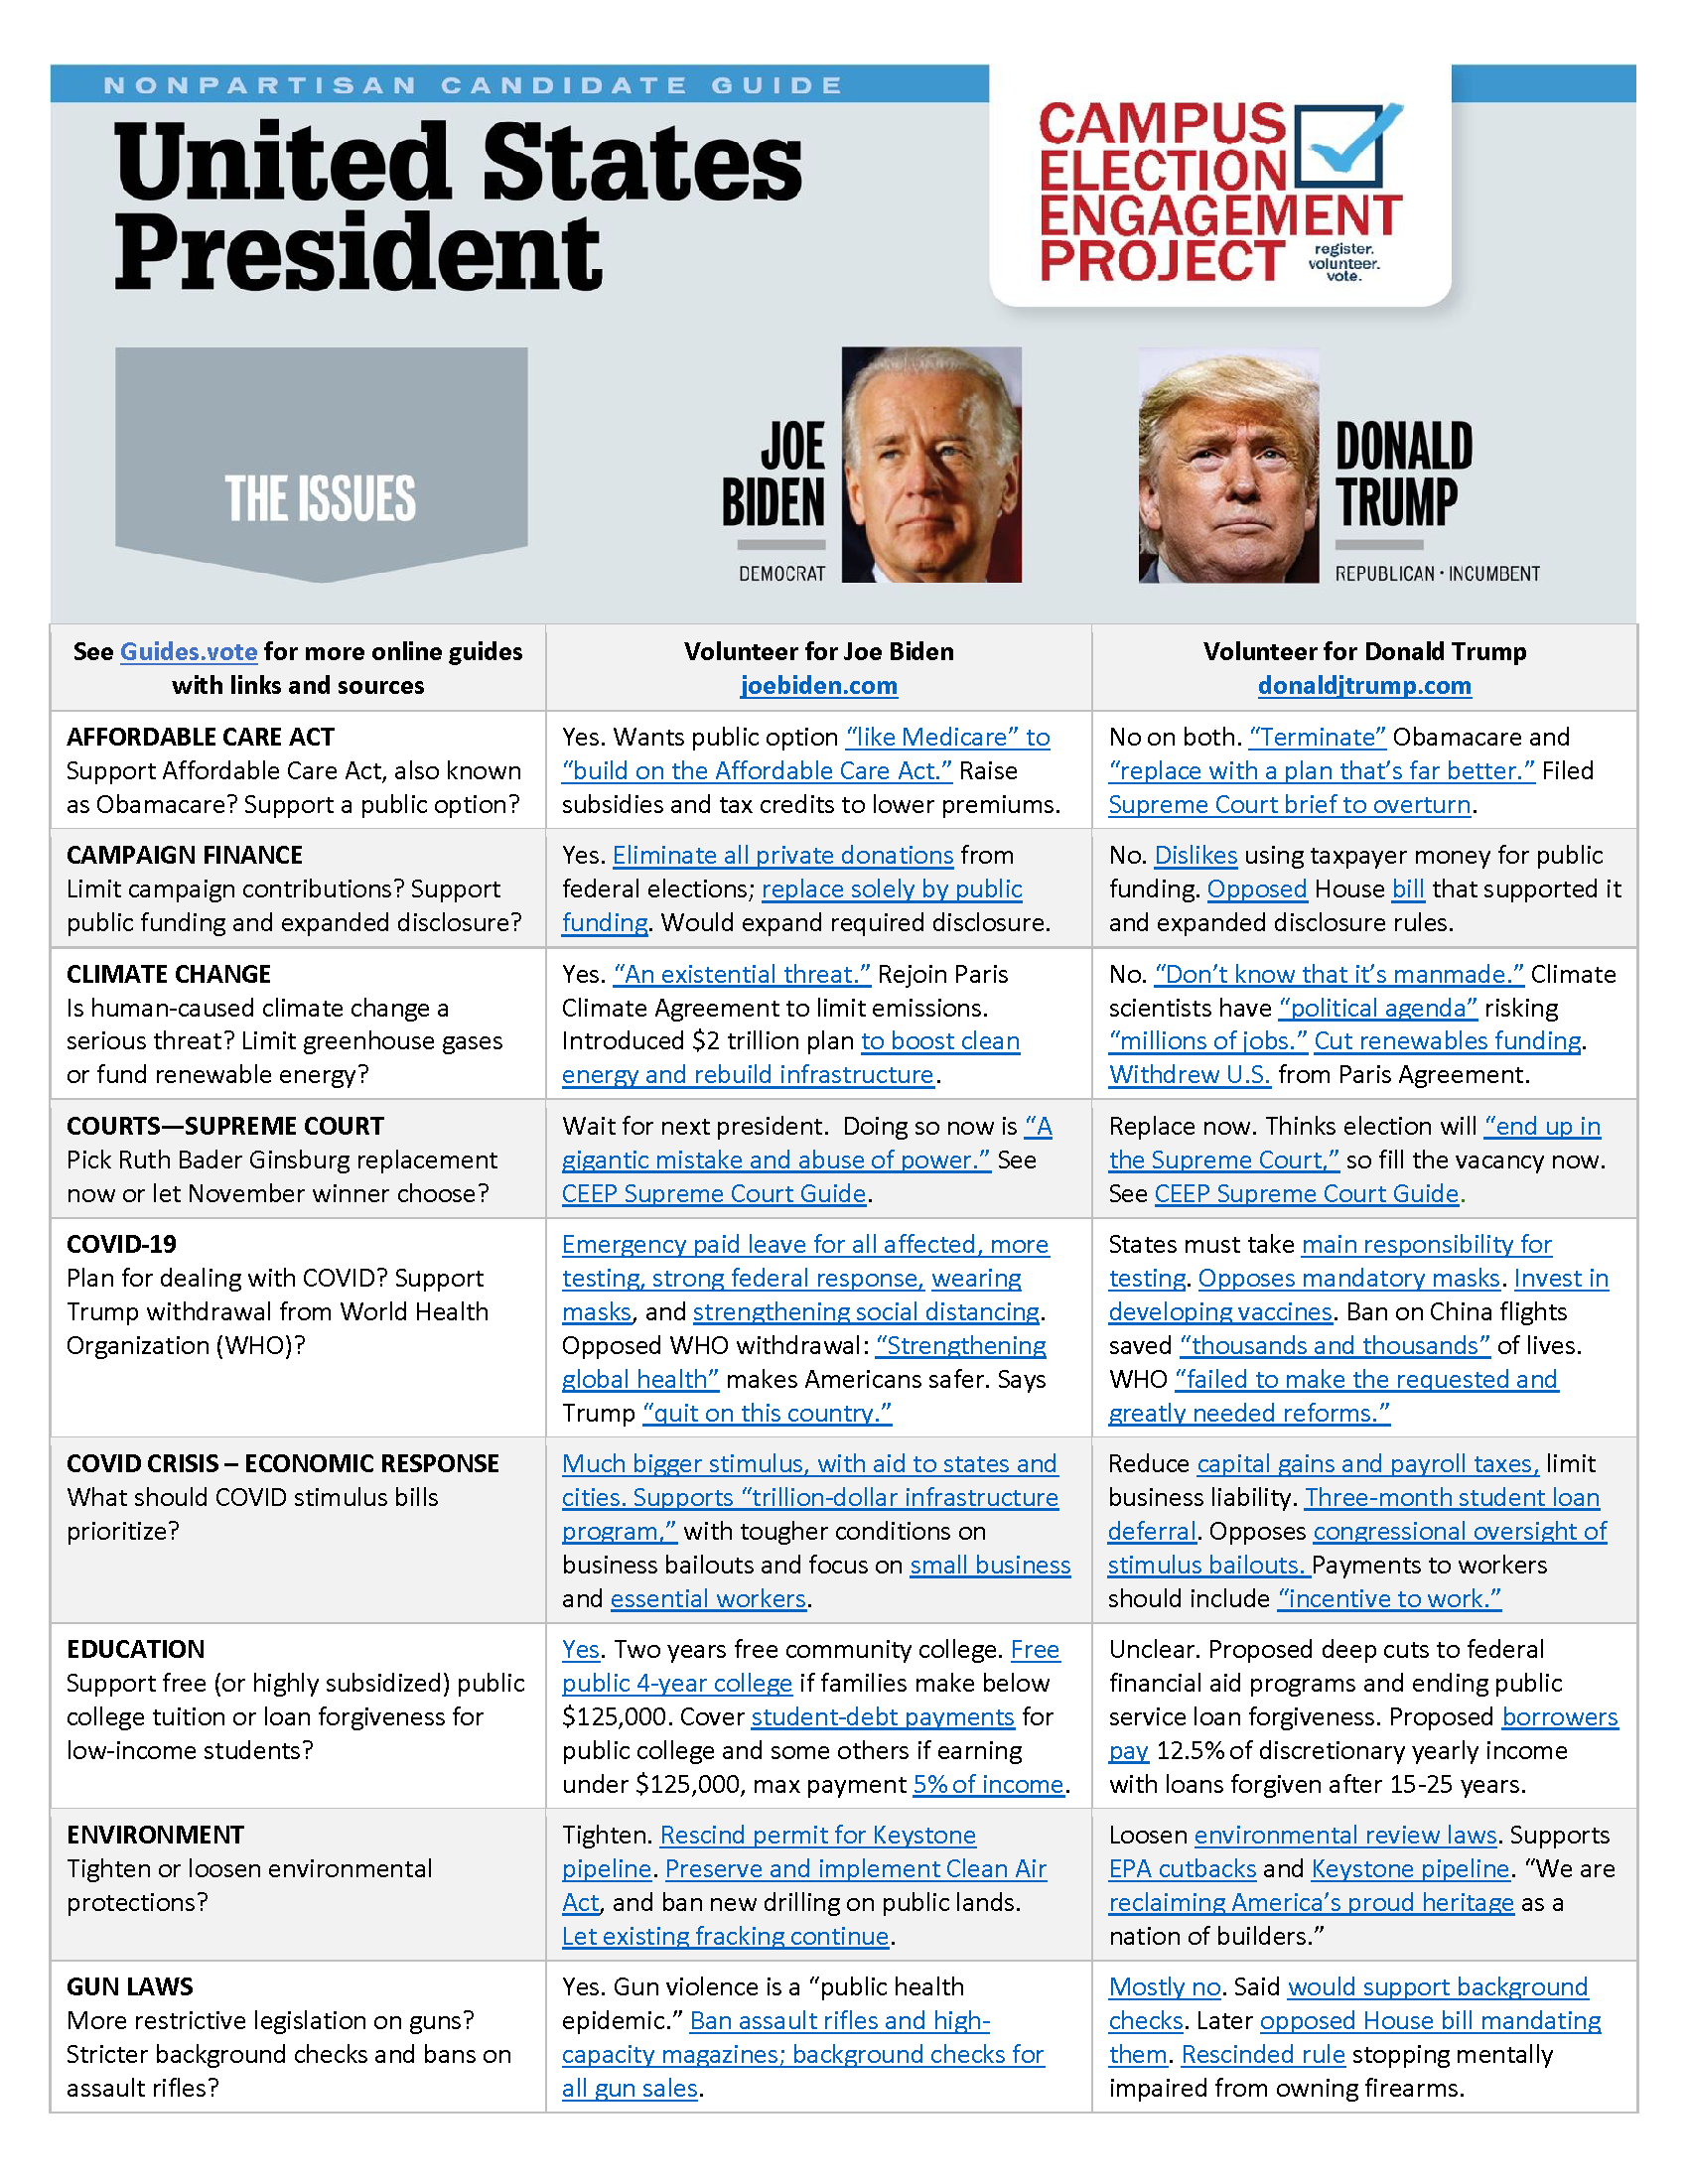 Nonpartisan candidate guide - US President